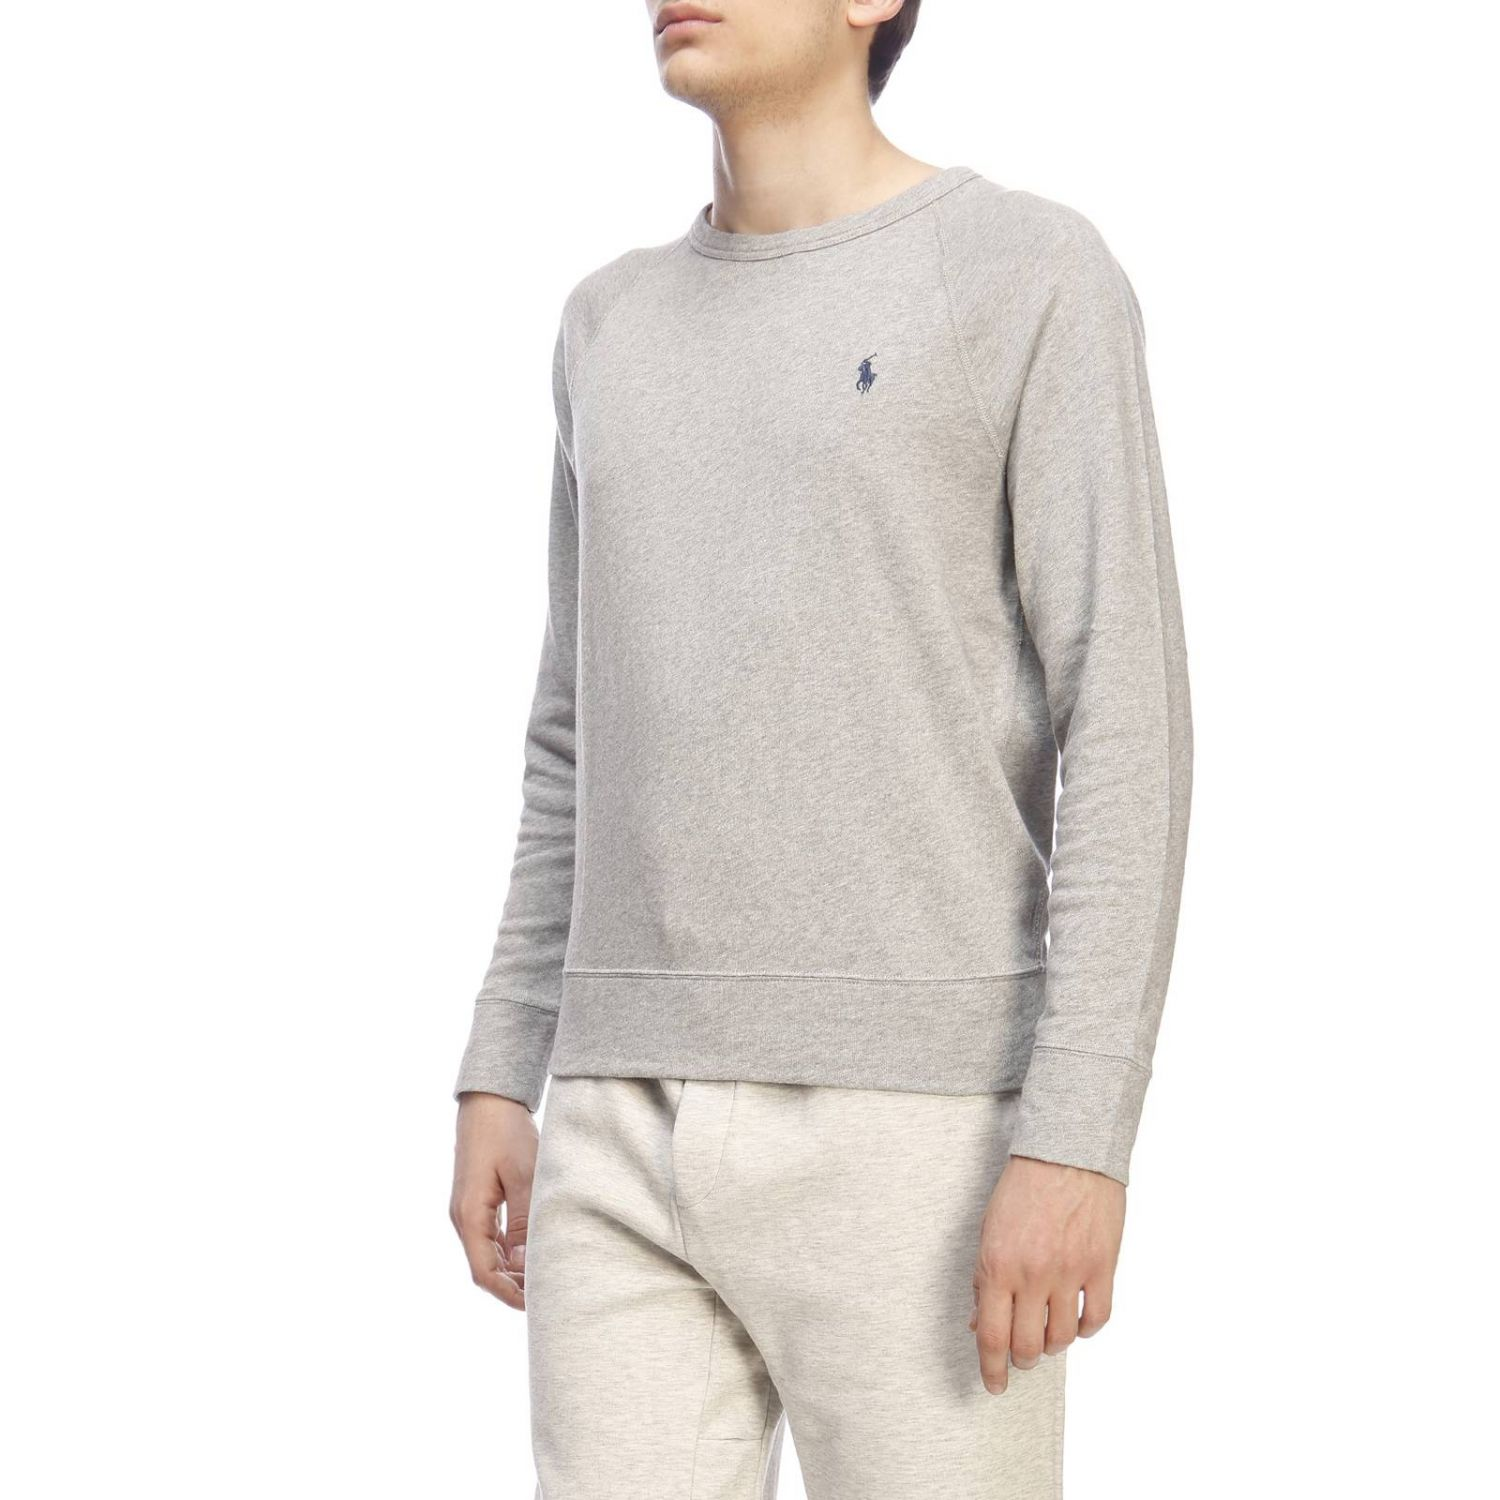 Pull homme Polo Ralph Lauren gris 2